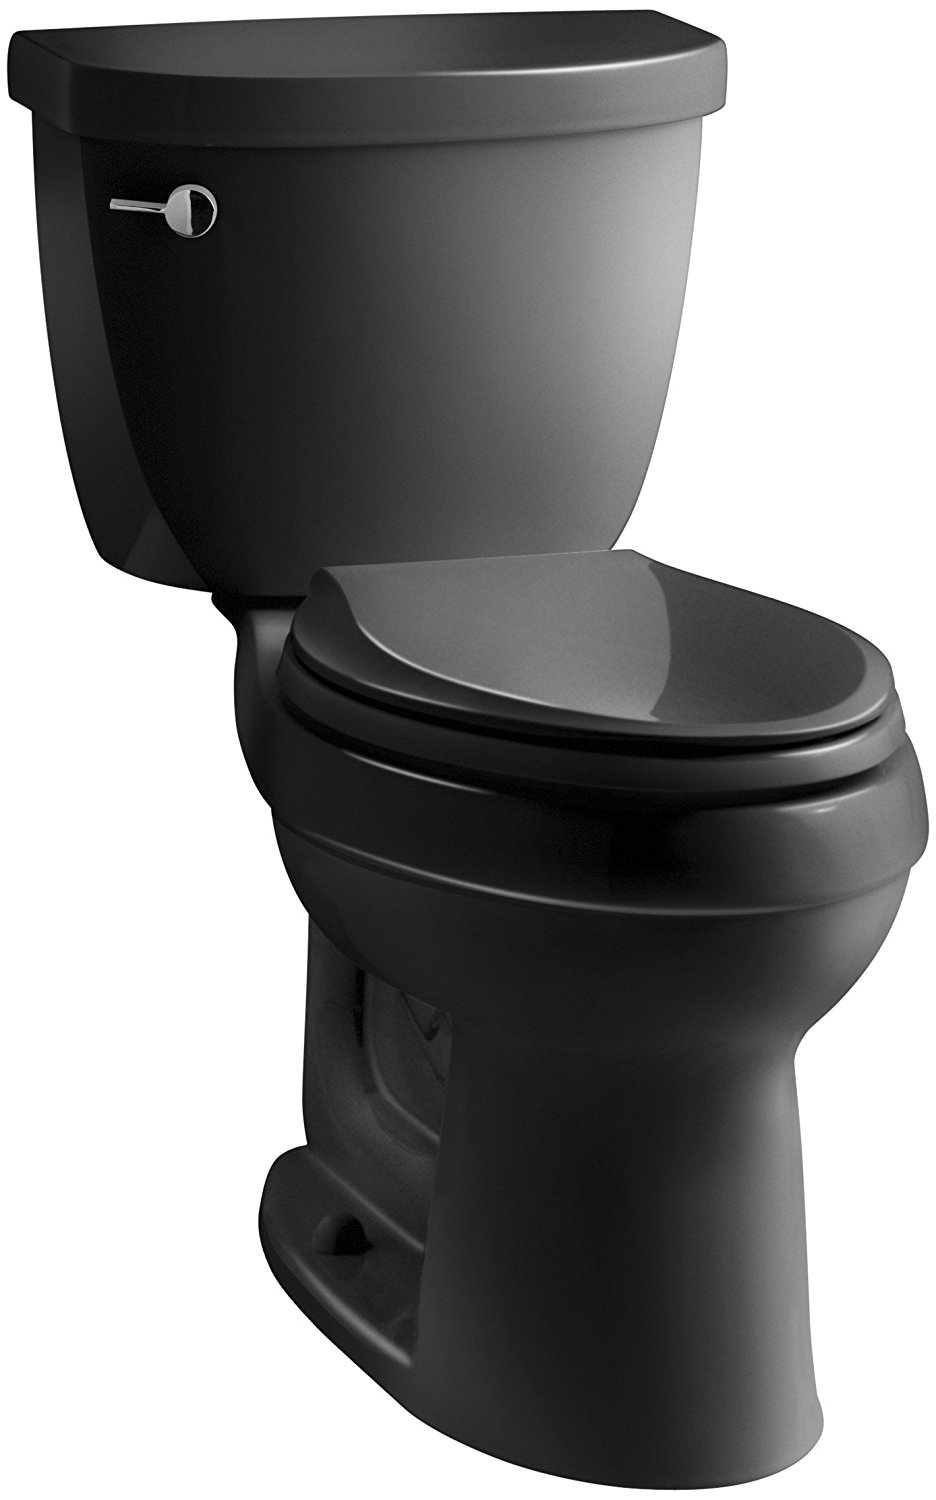 KOHLER K-3589-7 Cimarron Comfort Height Elongated 1.6 gpf Toilet with AquaPiston Technology, Less Seat, Black Black